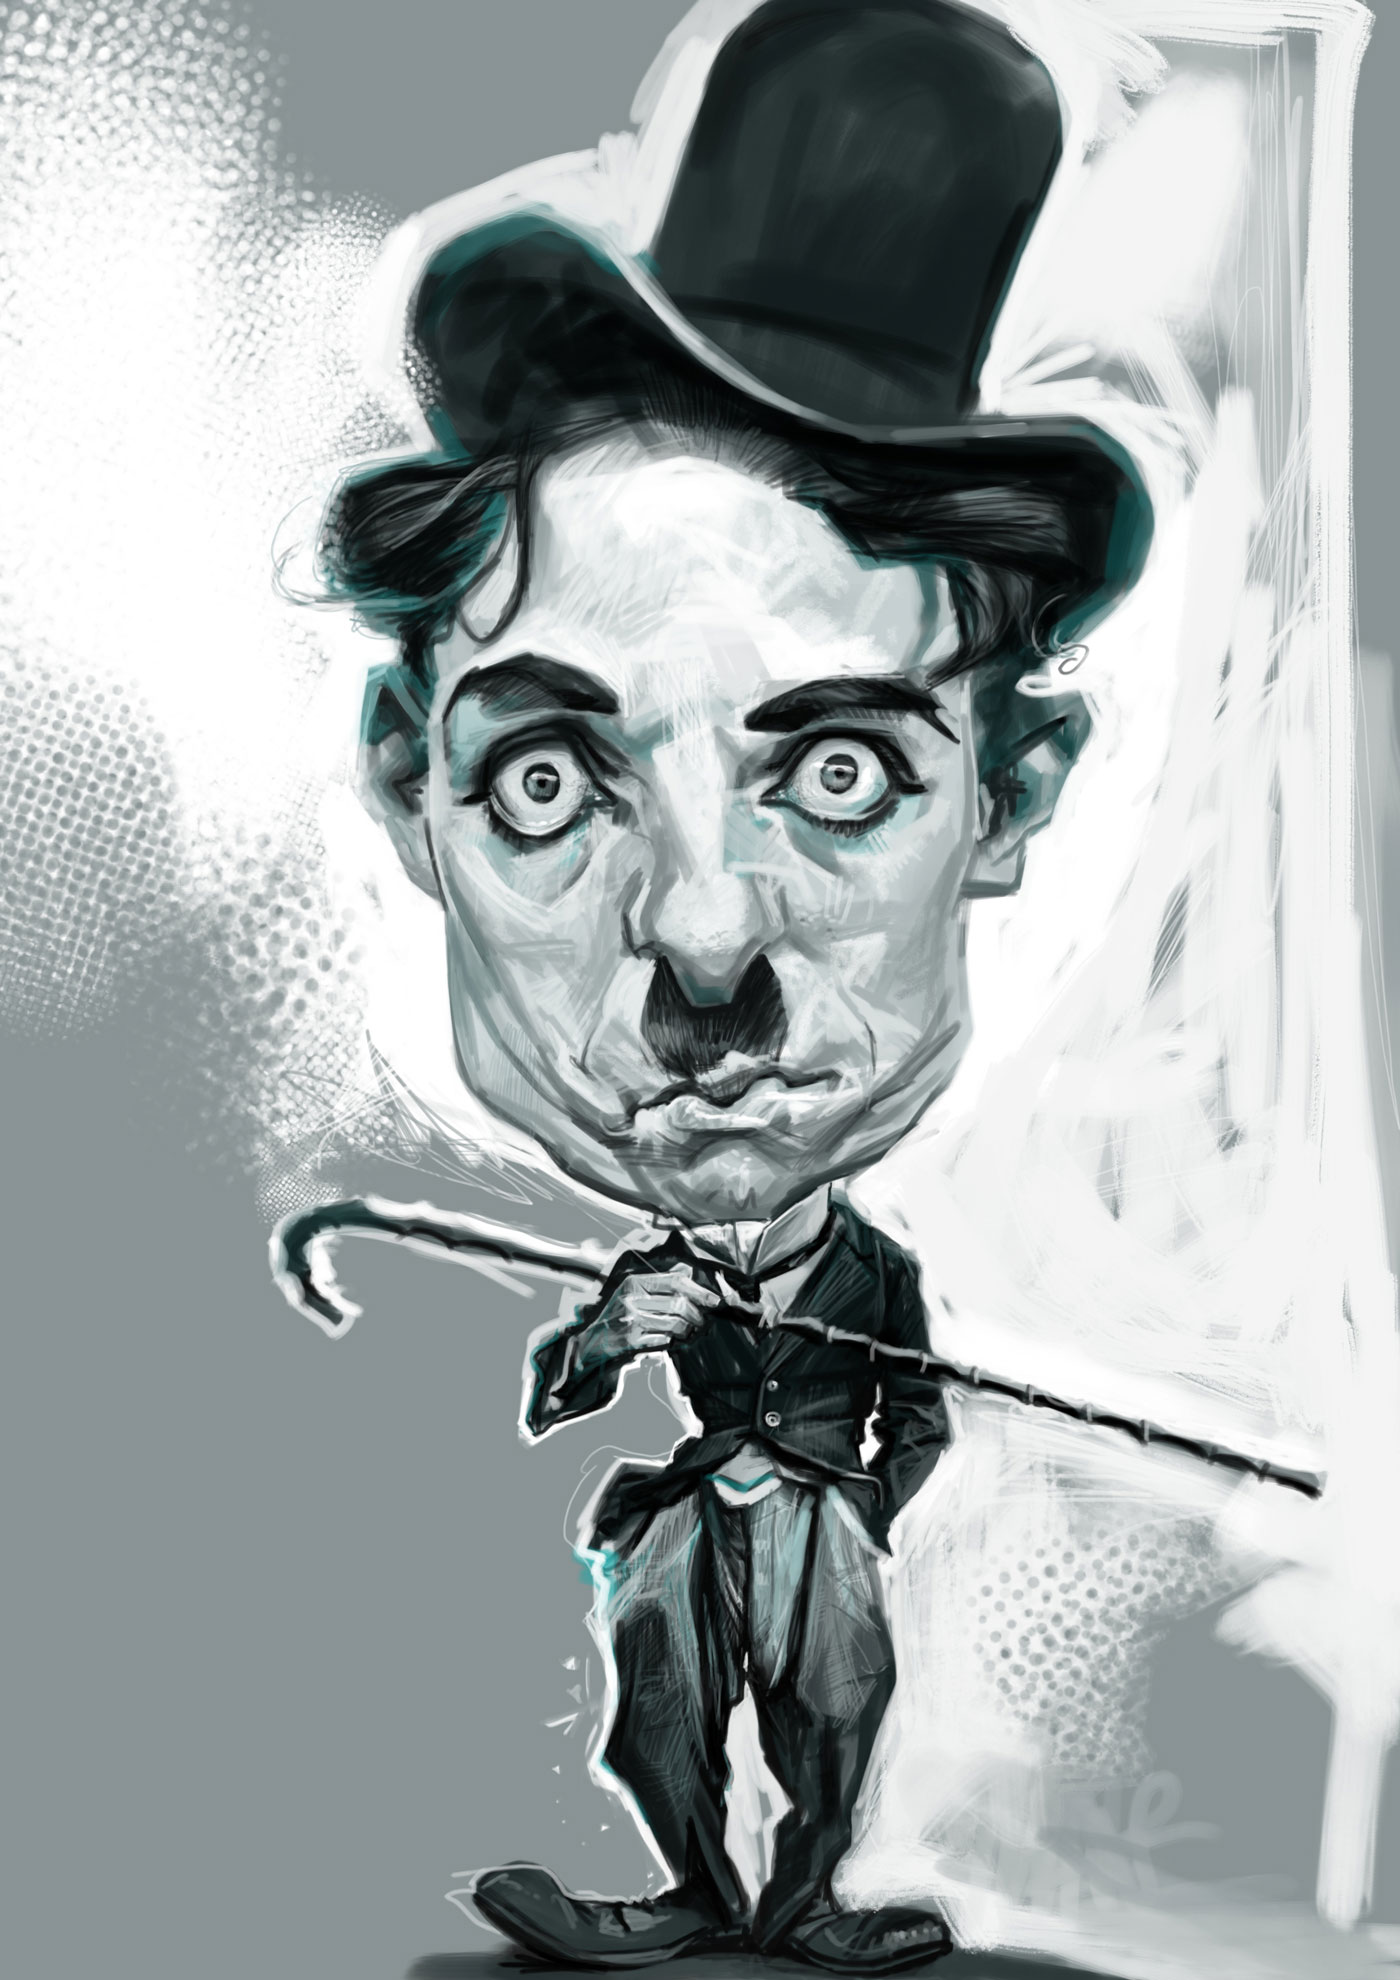 Digital caricature of Charlie Chaplin